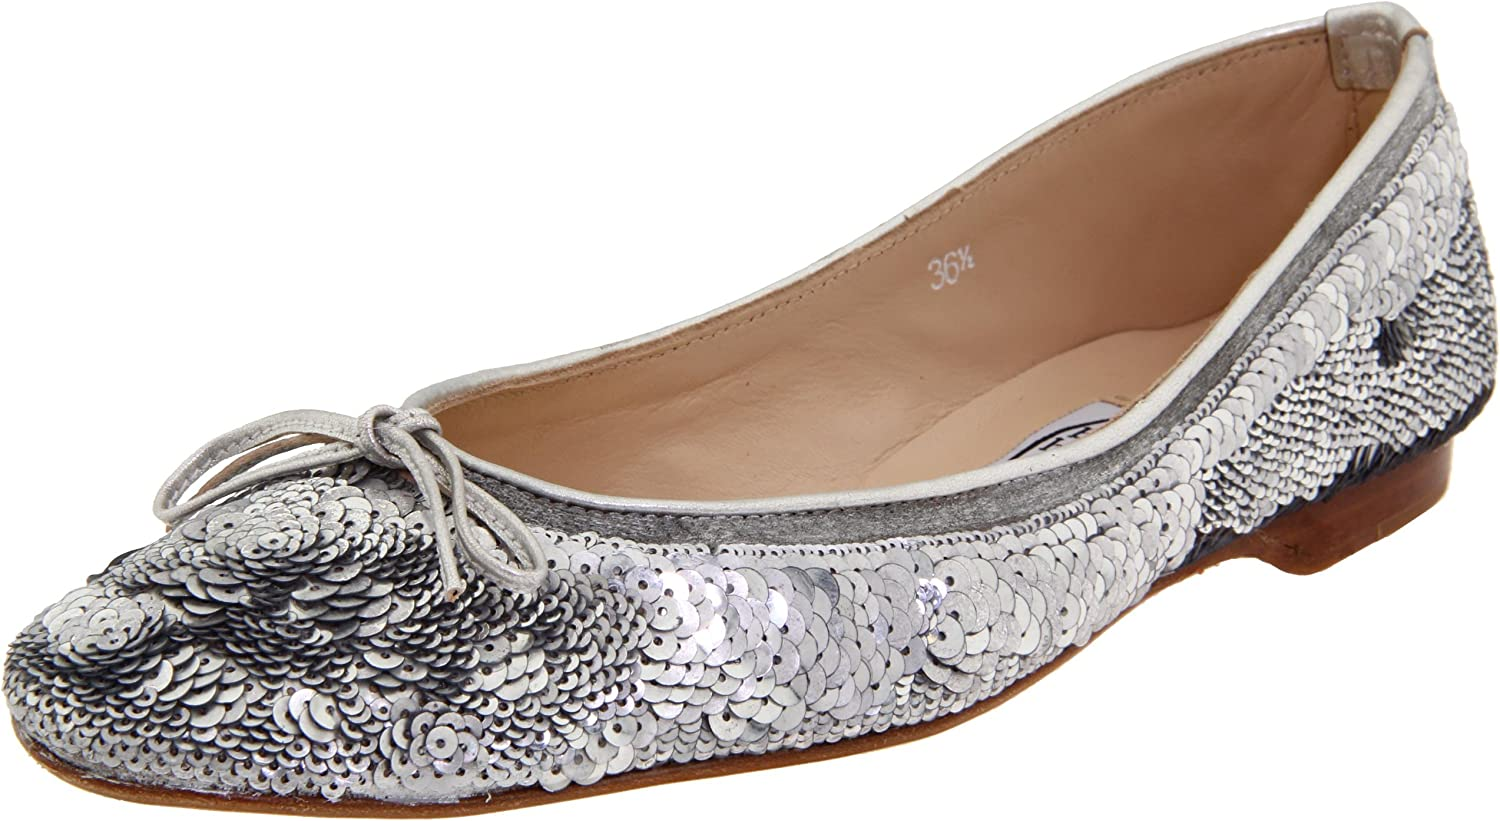 Emma Hope Women's Fish Scales Rd Ballet